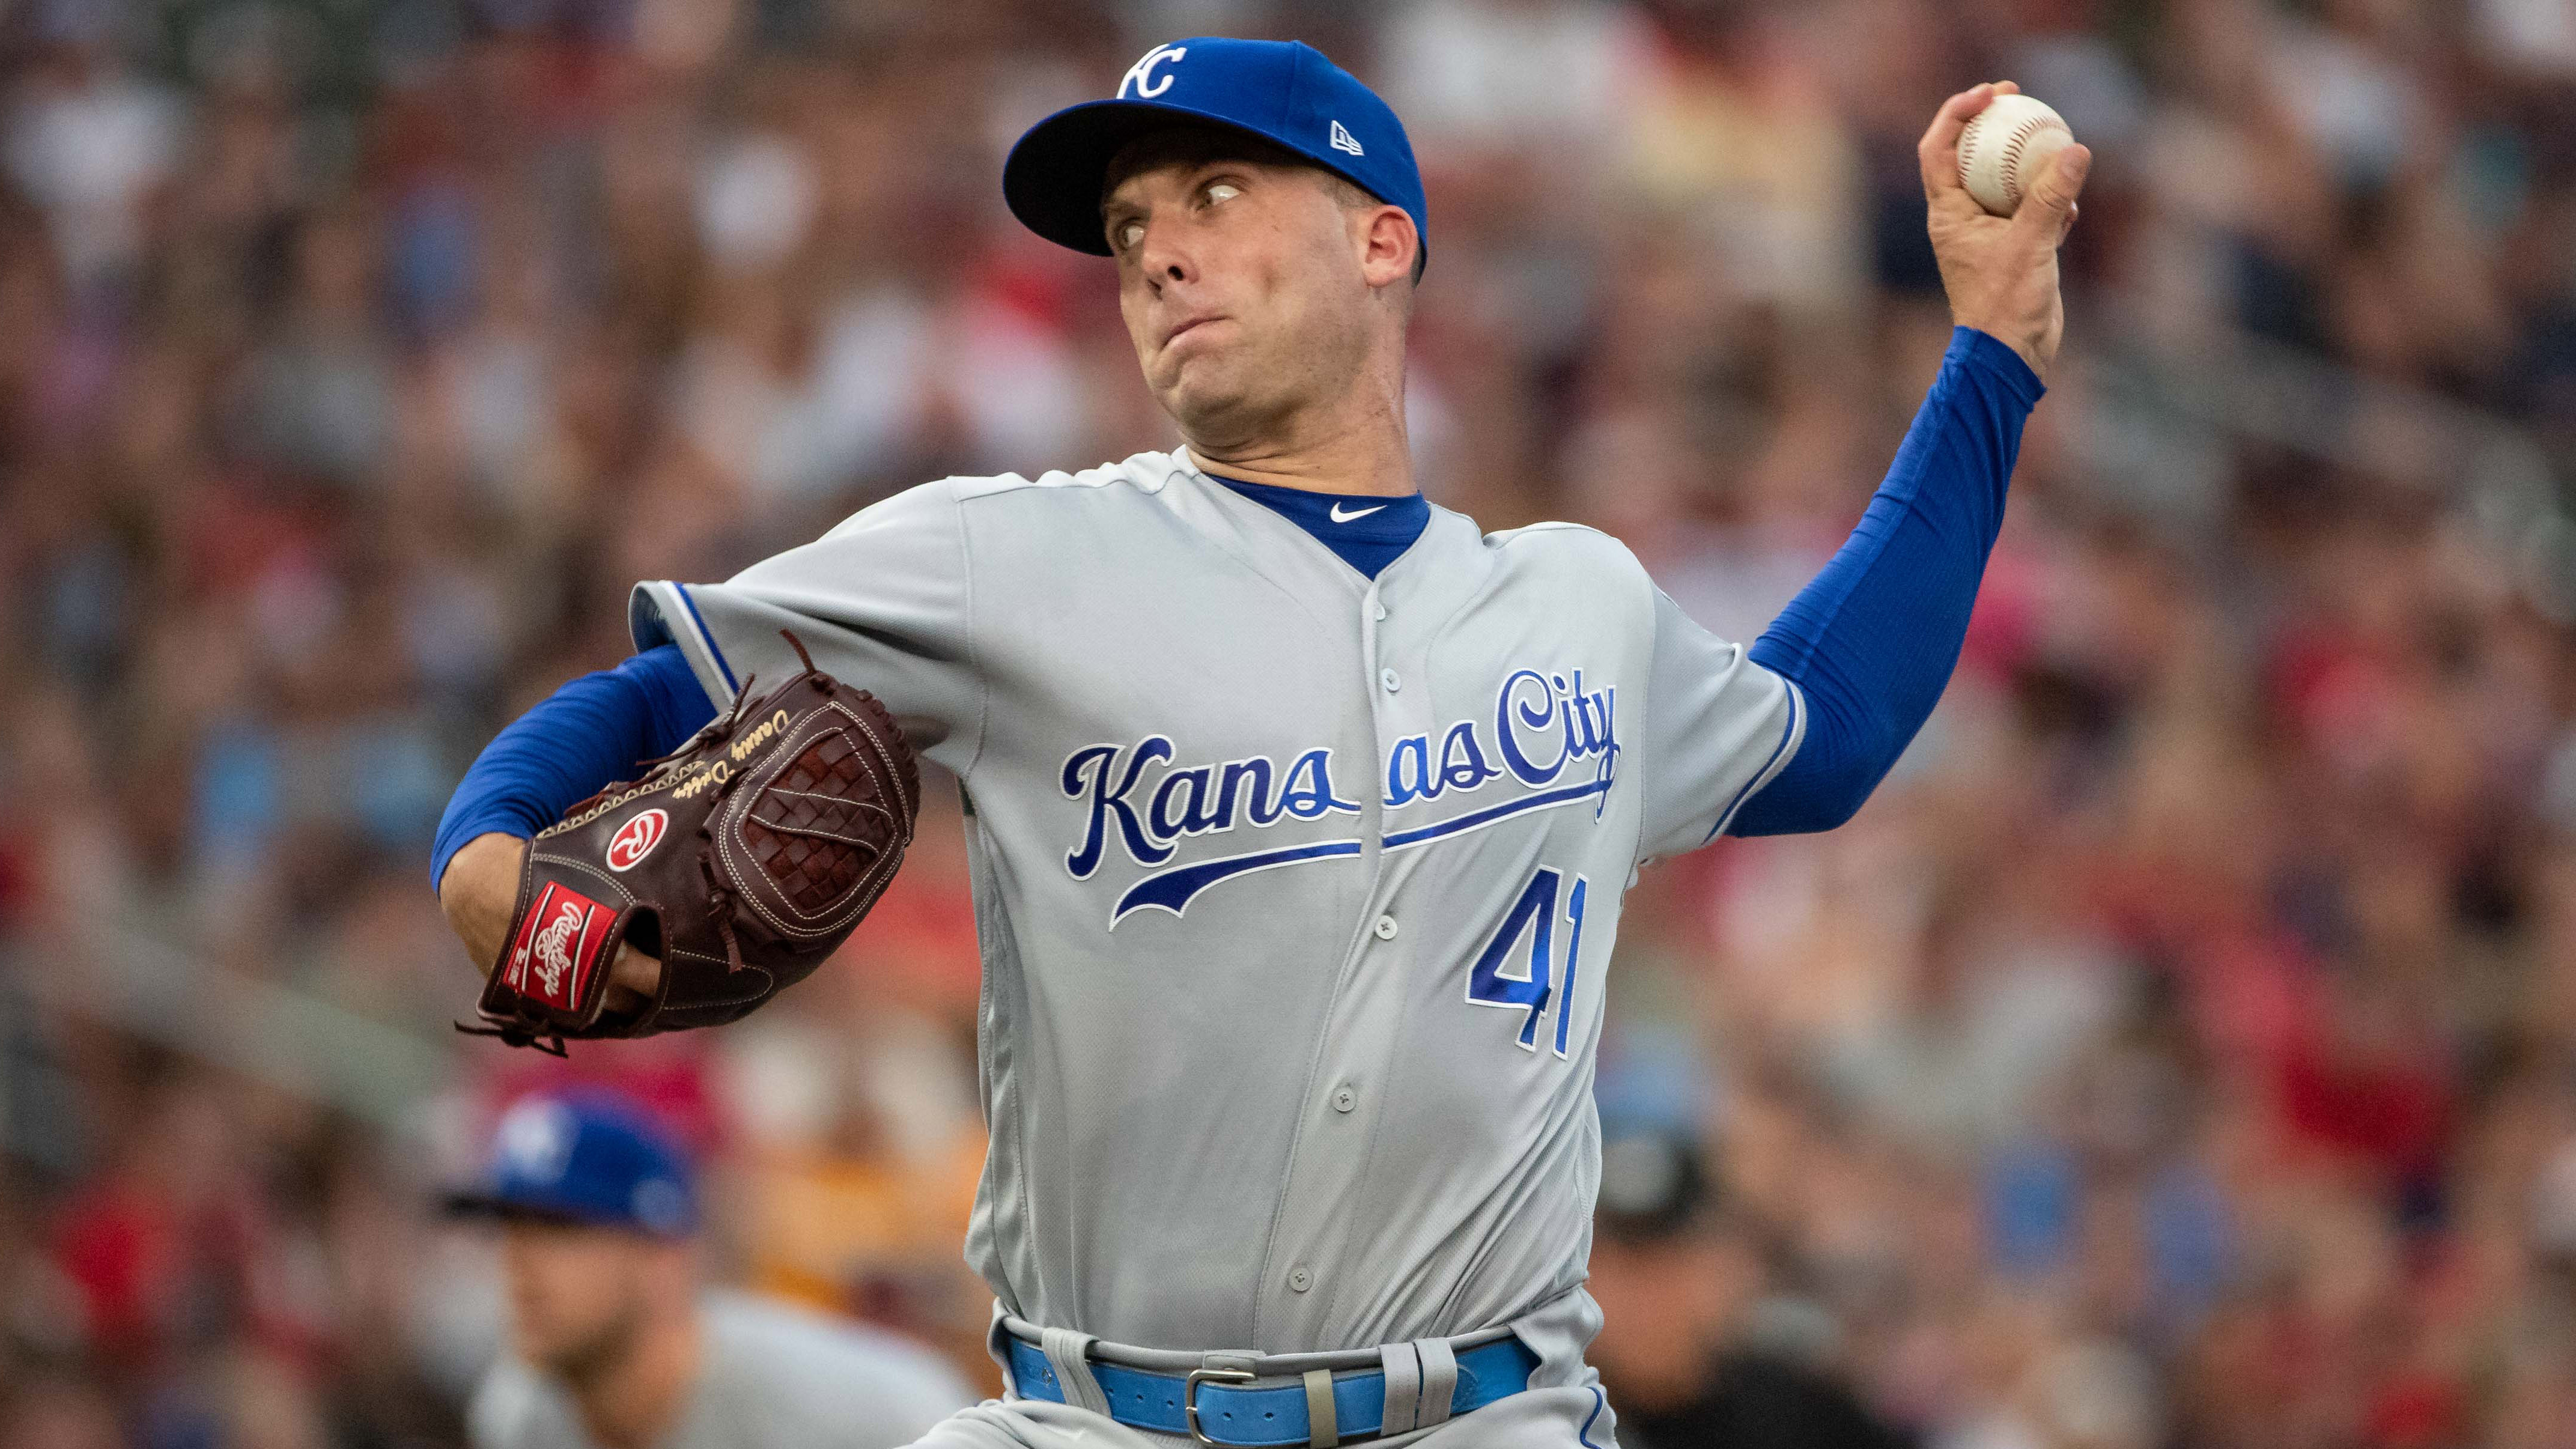 Royals place Duffy on IL, recall Newberry from Storm Chasers